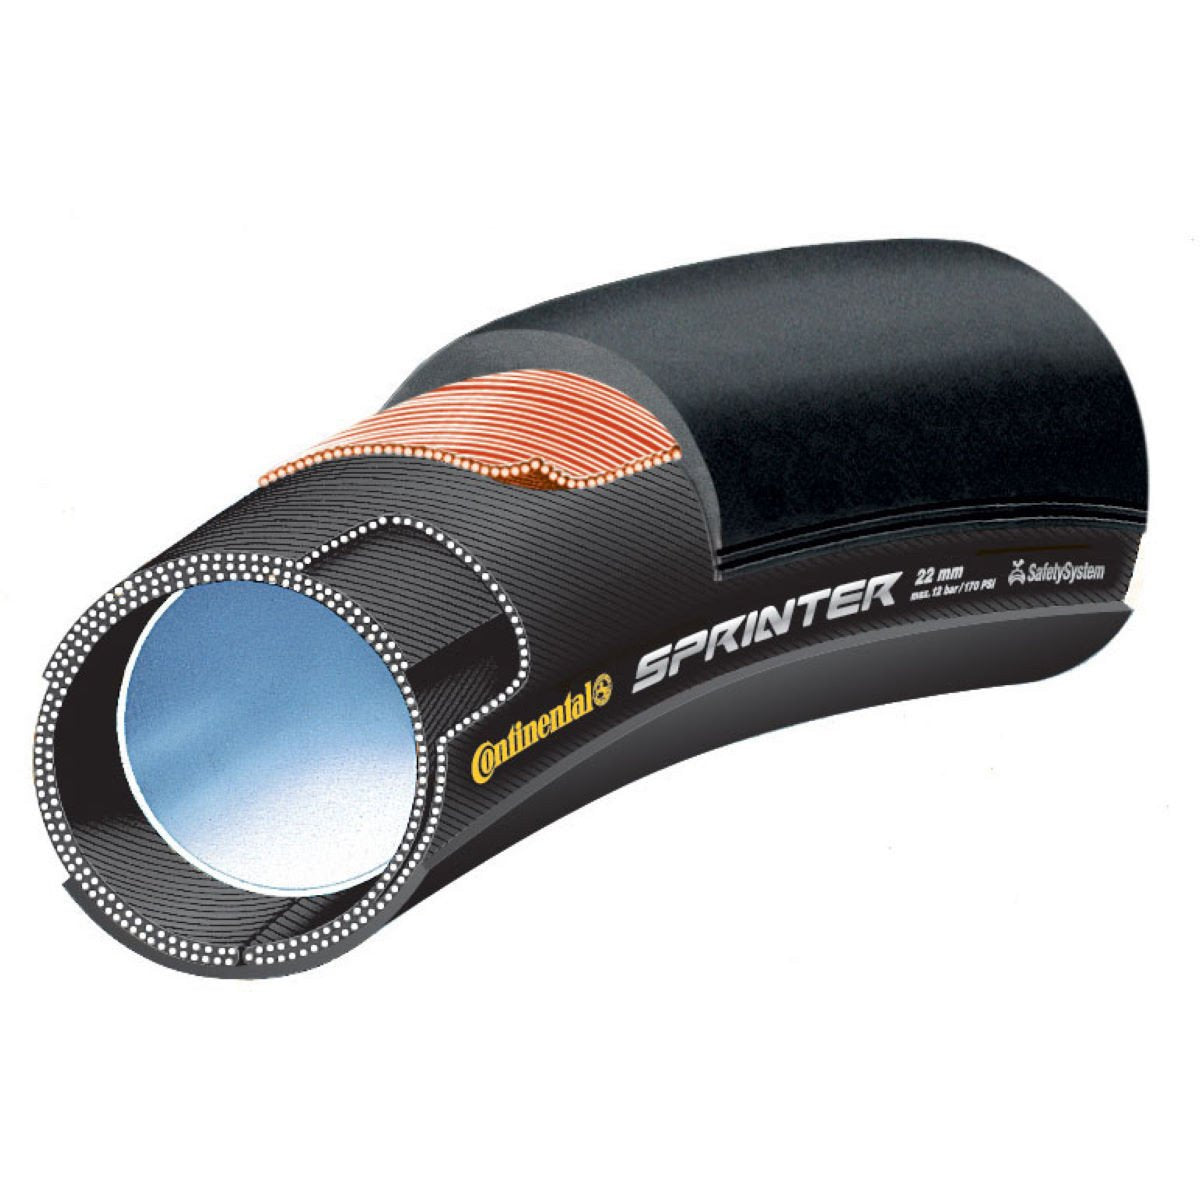 "Continental Sprinter Tubular 28""x 25mm Black Chili Compound"